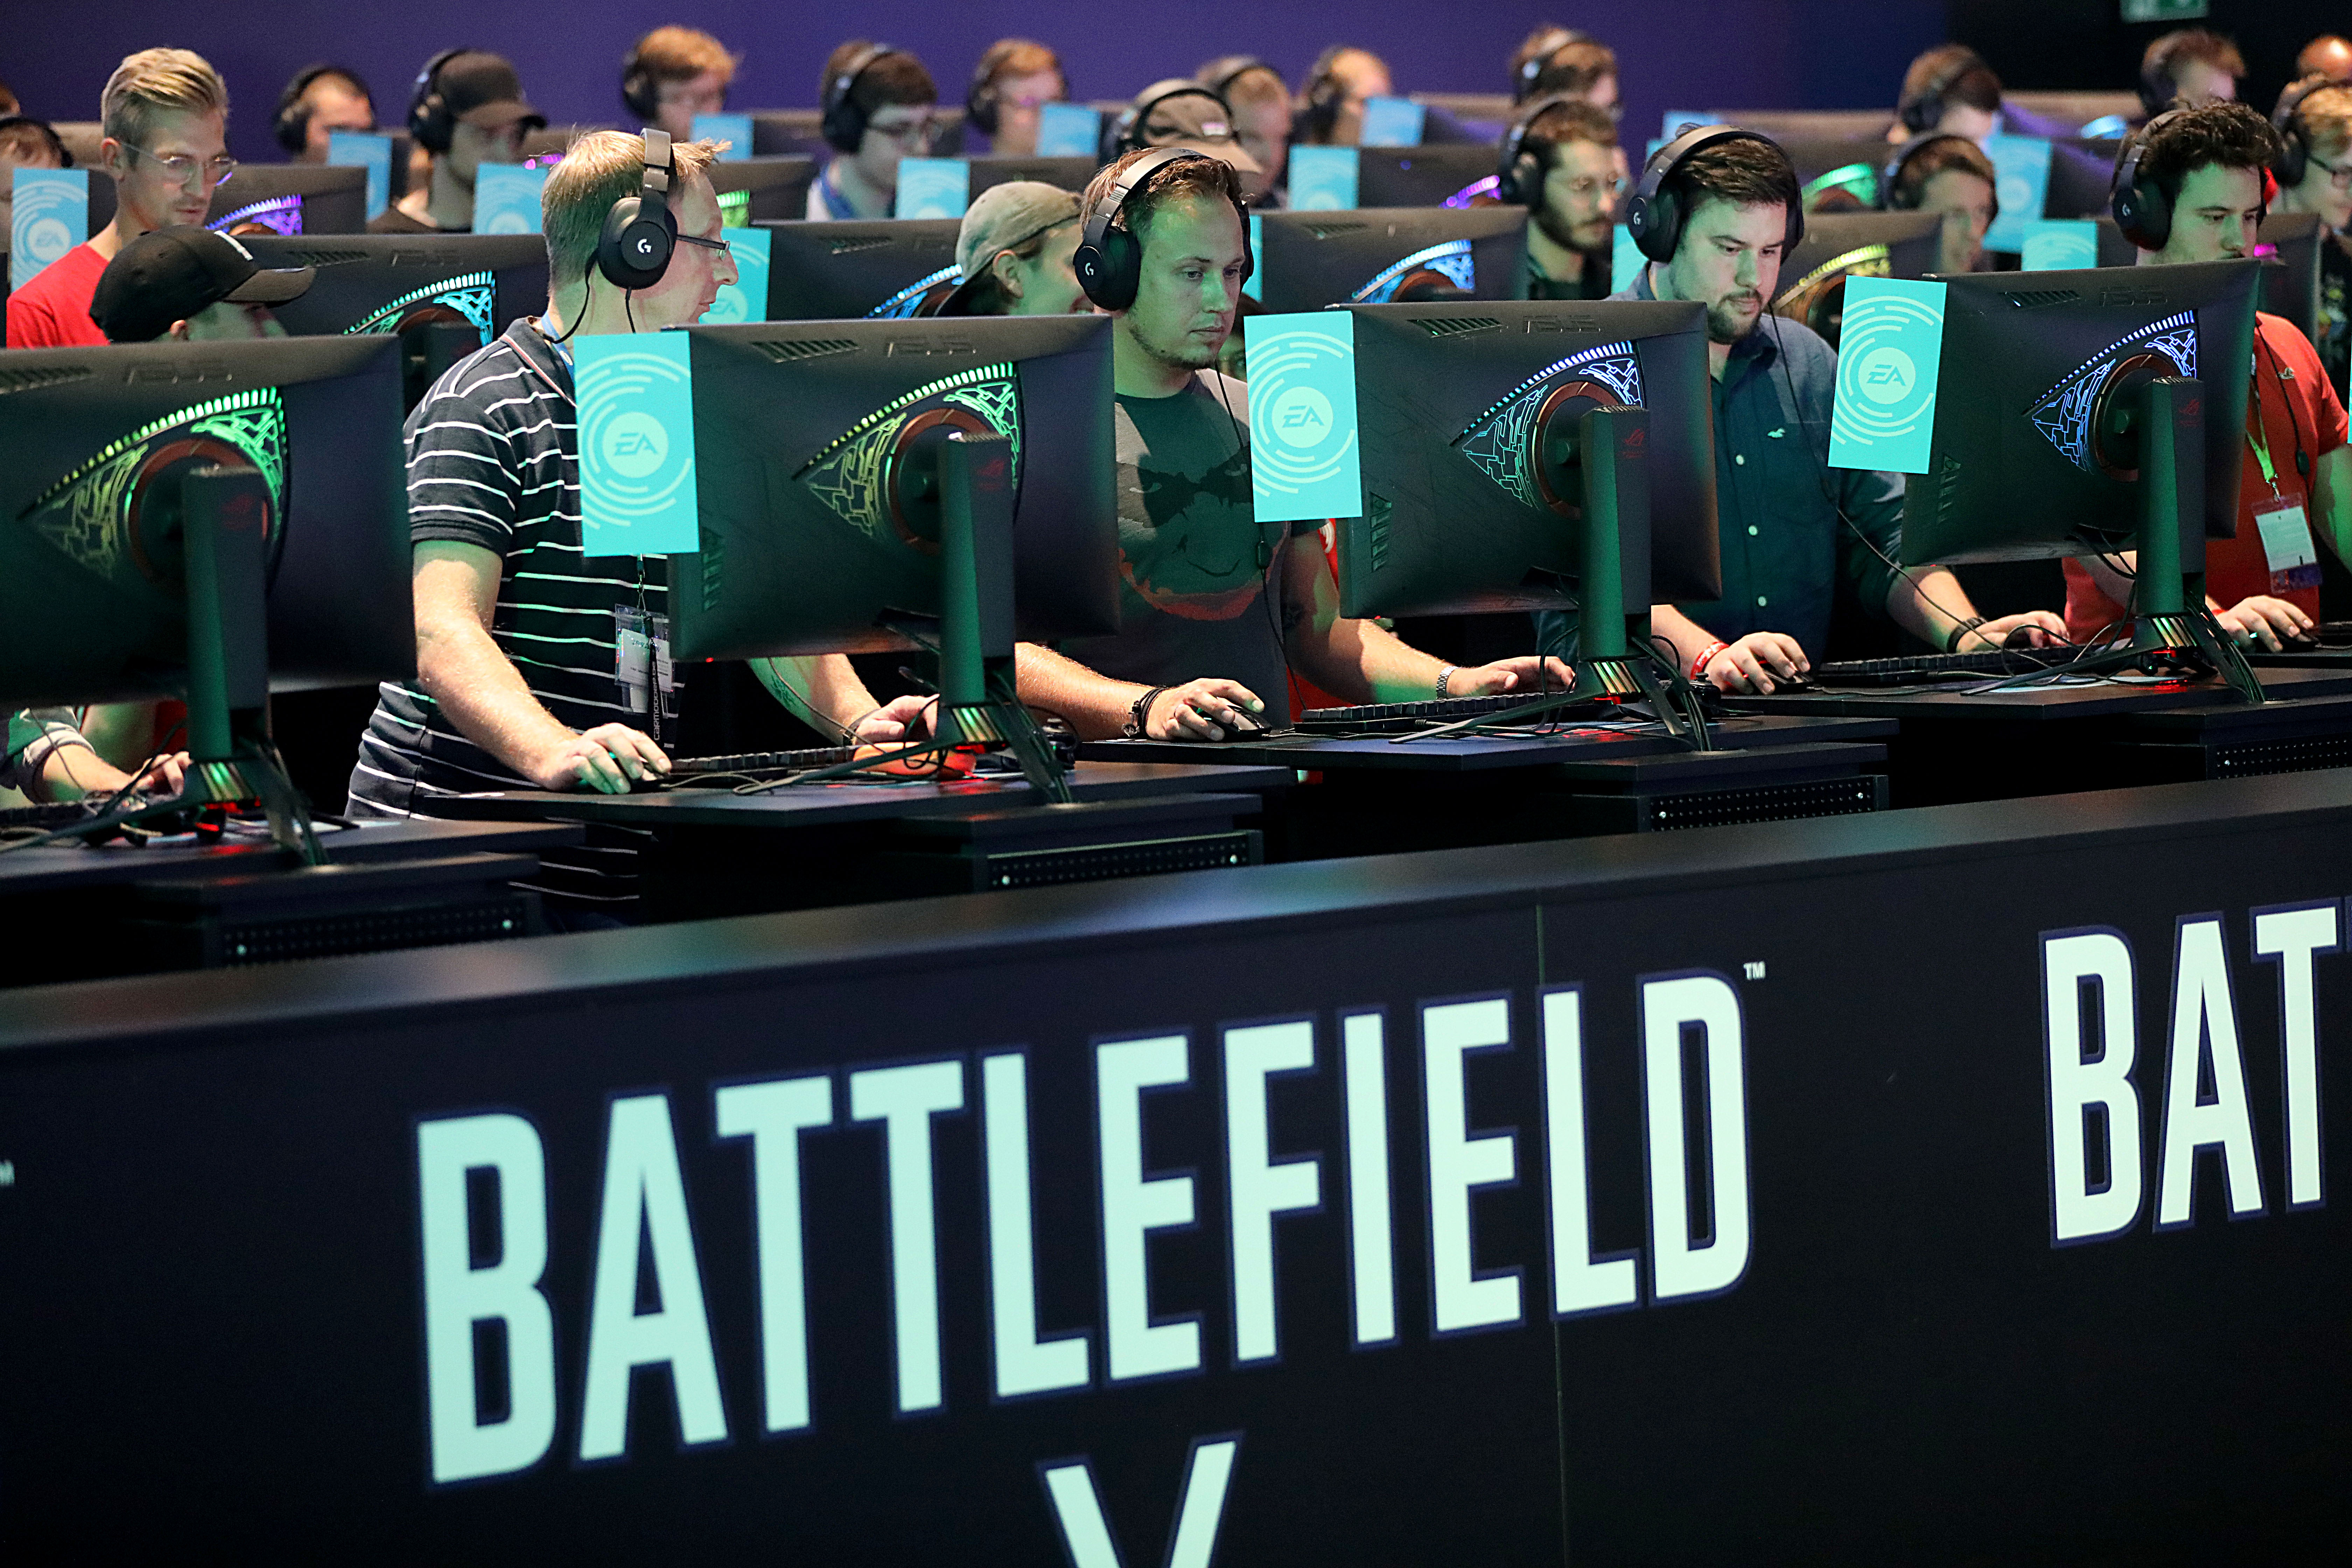 Visitors of Gamescom play at the stand of Electronic Arts  Battlefield  in Cologne, Germany on Aug. 21, 2018.